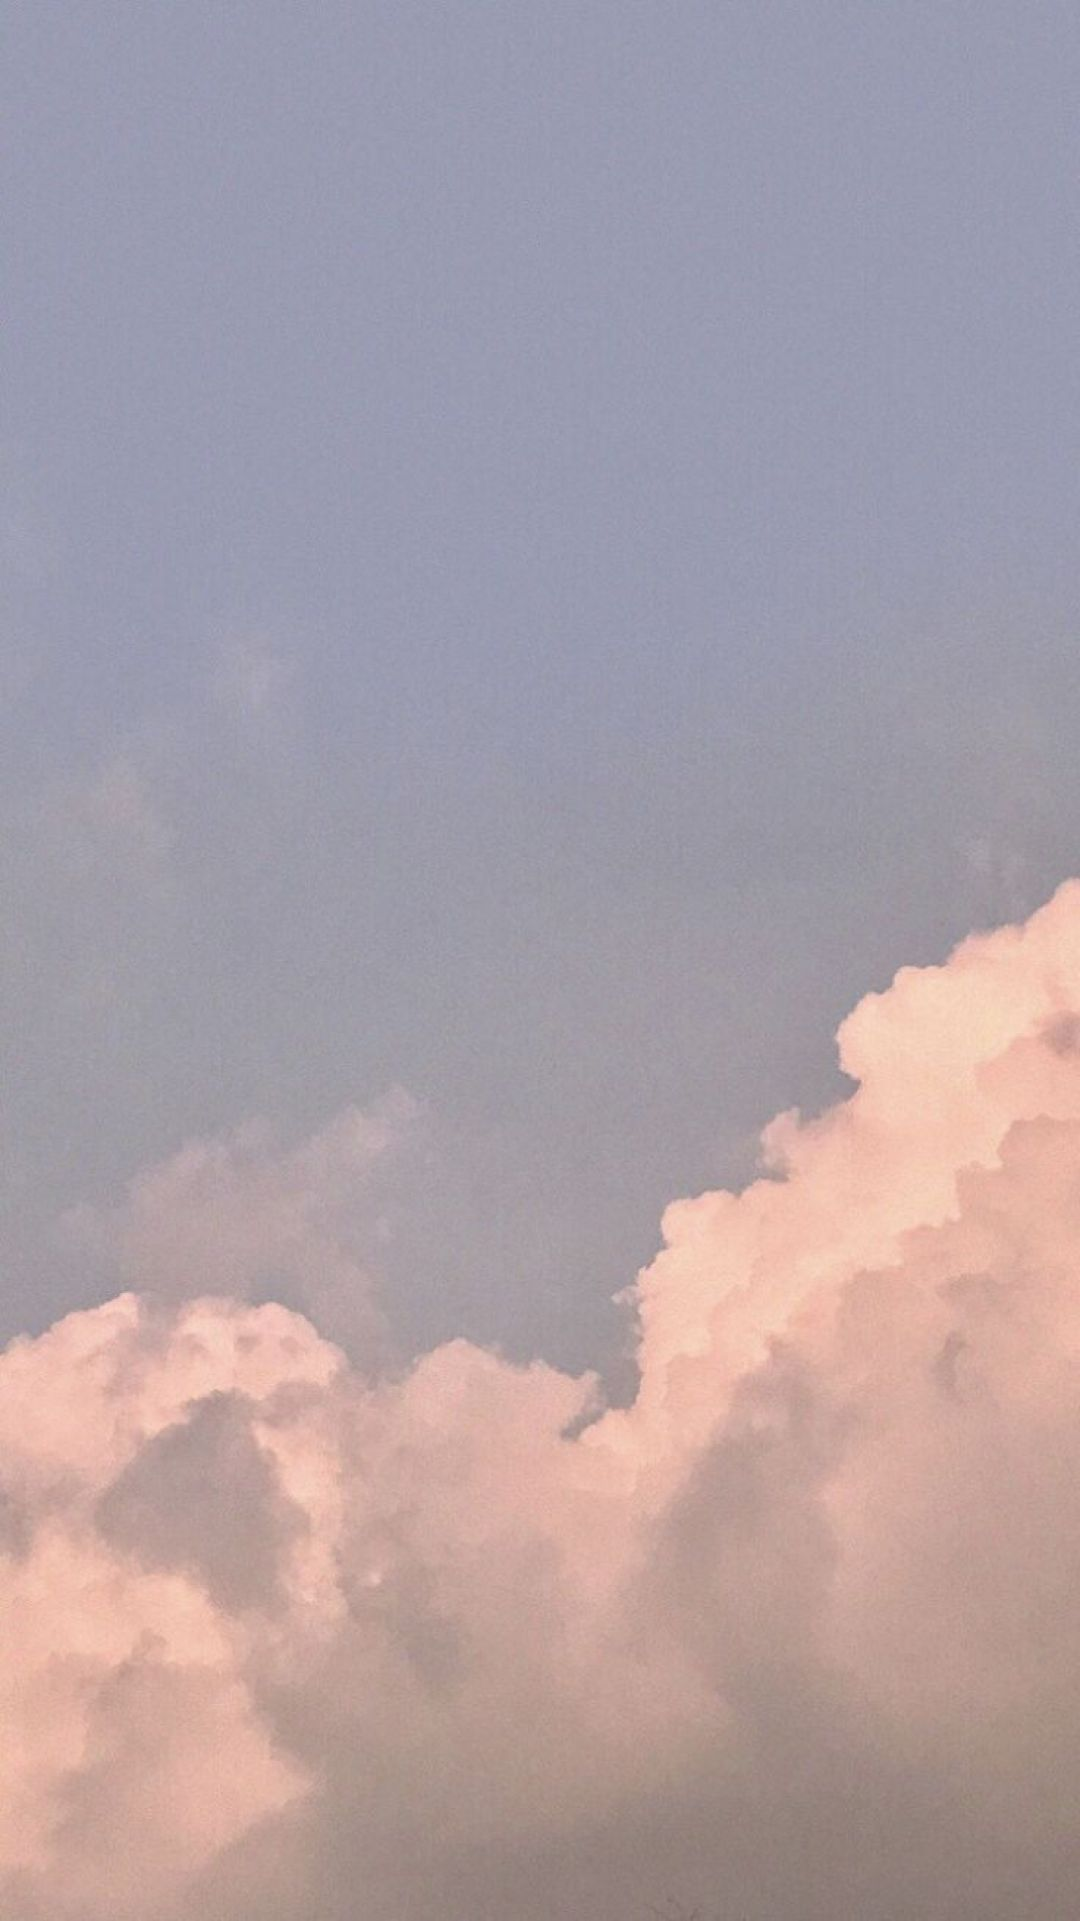 6 Aesthetic Background Laptop Clouds Clouds Wallpaper Iphone Sky Aesthetic Cloud Wallpaper